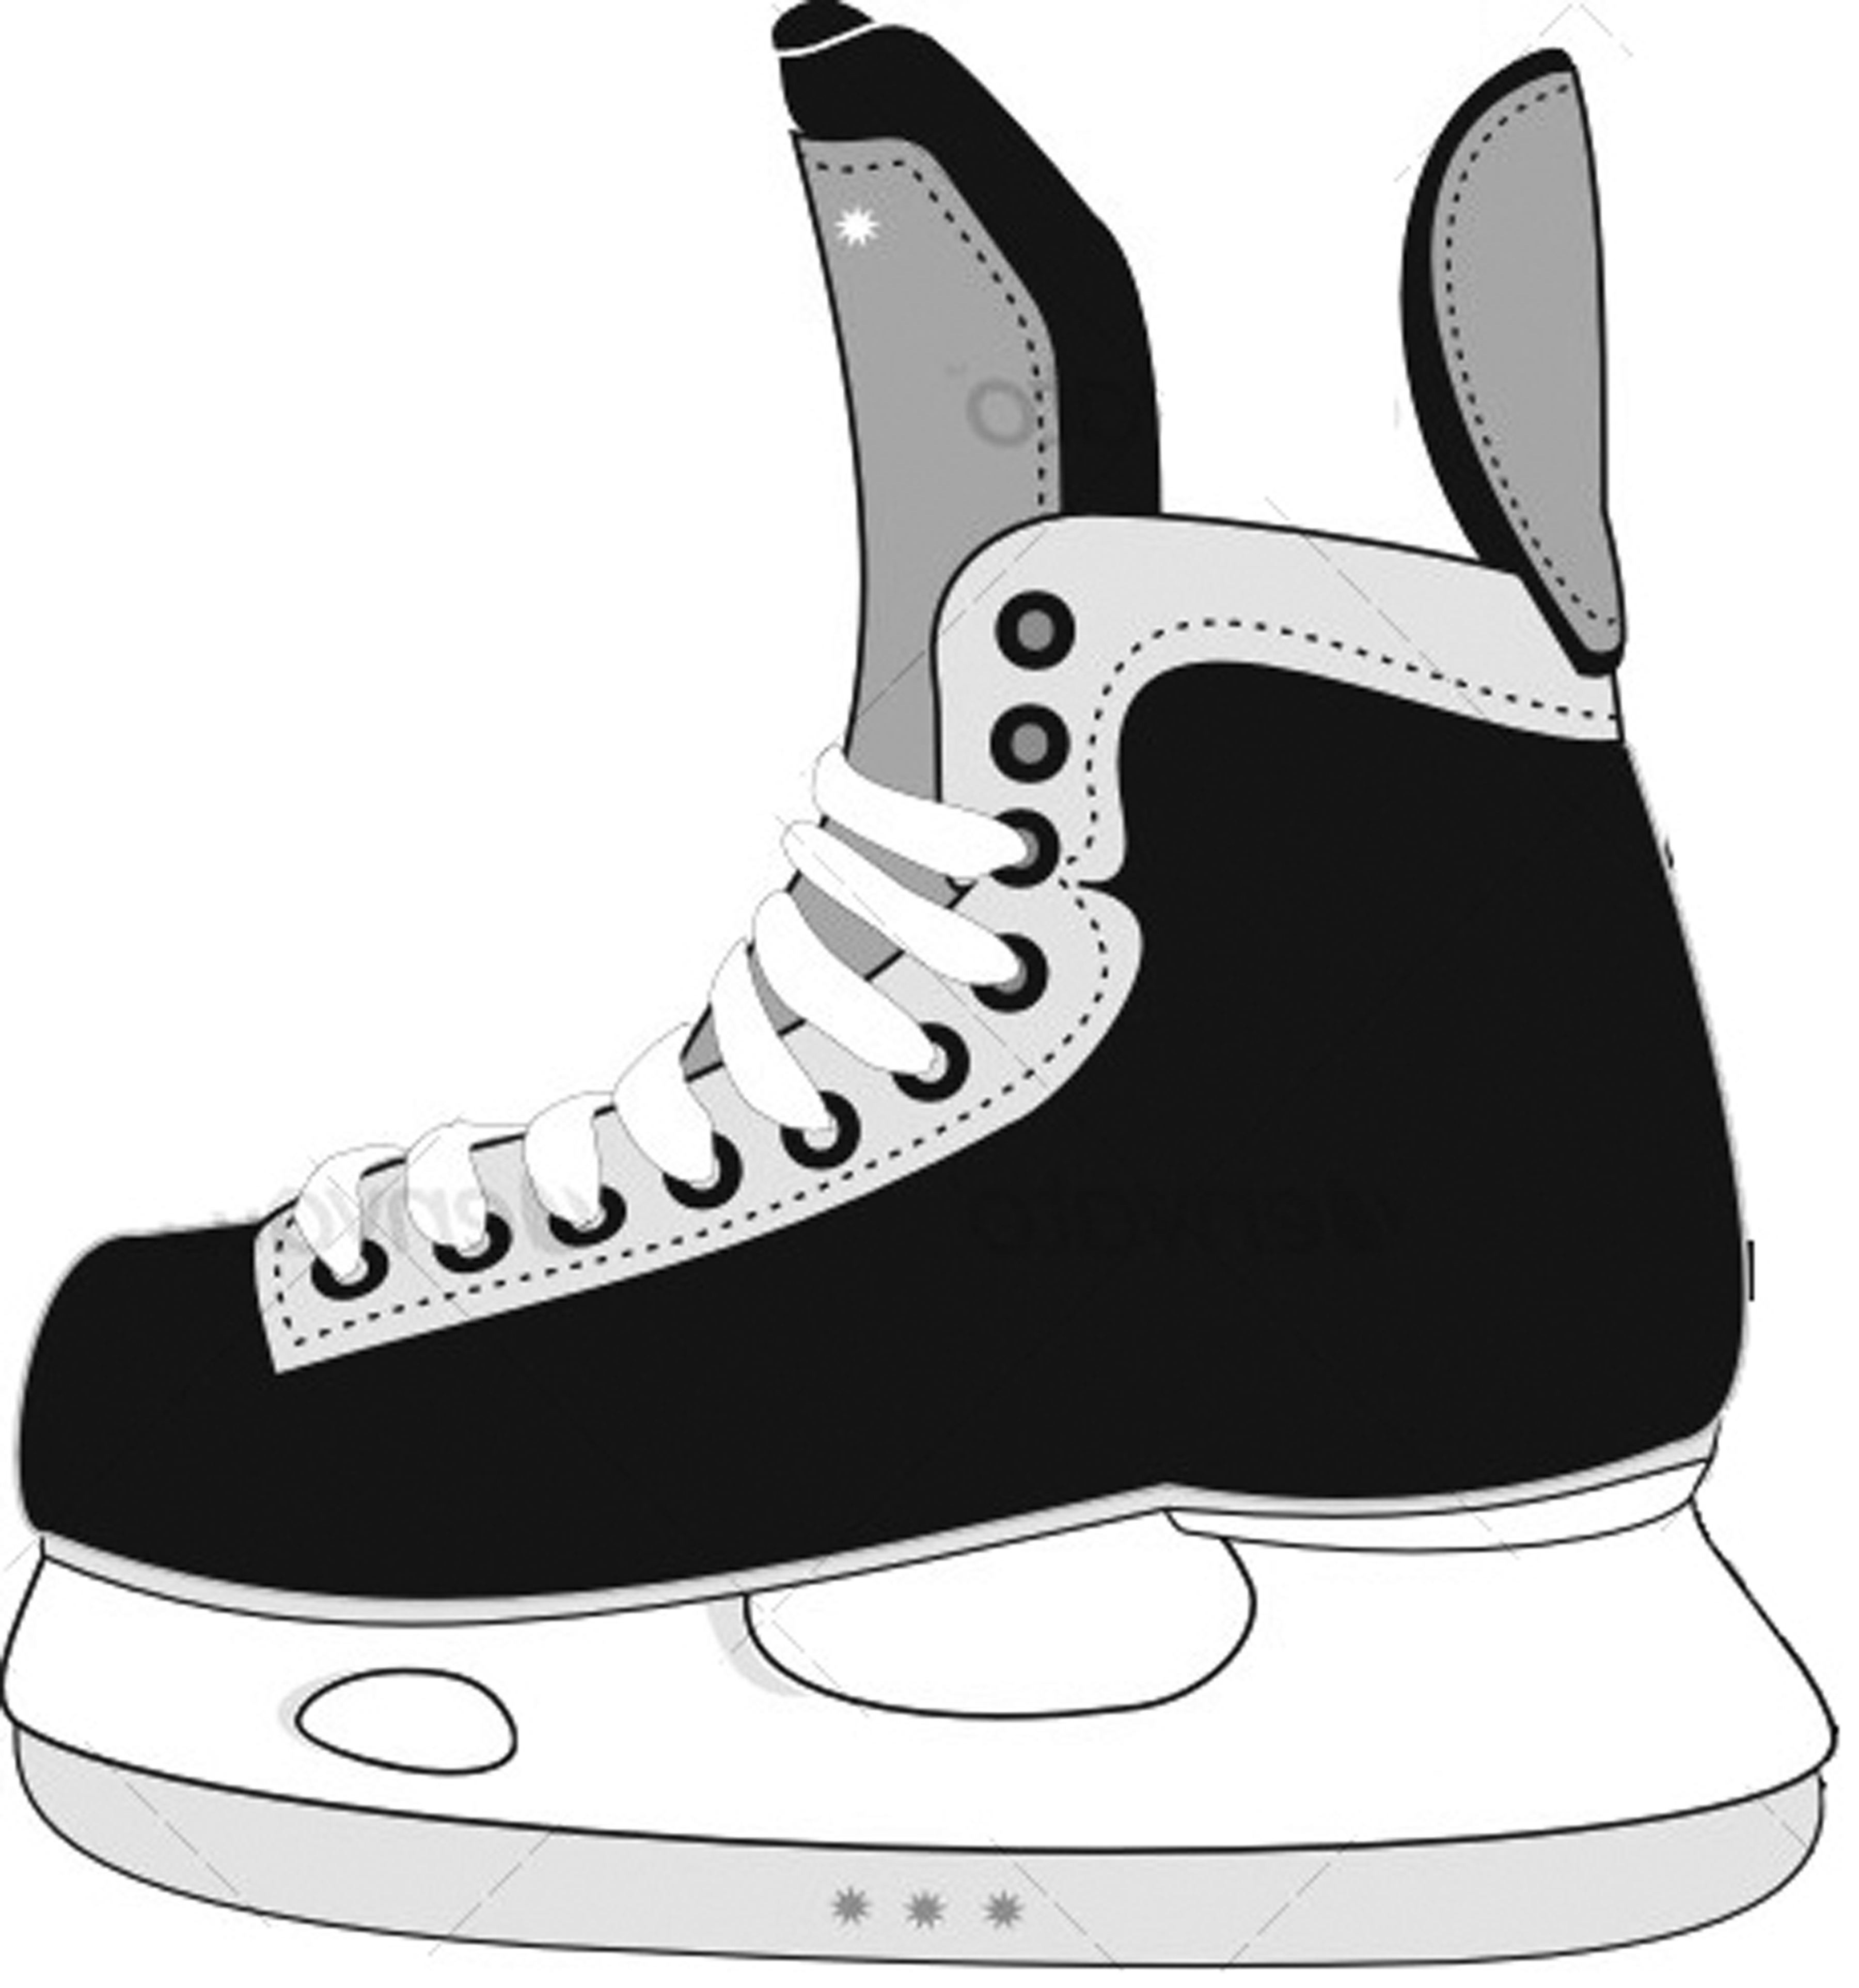 Displaying 20 Images For Cartoon Hockey -Displaying 20 Images For Cartoon Hockey Skates-3